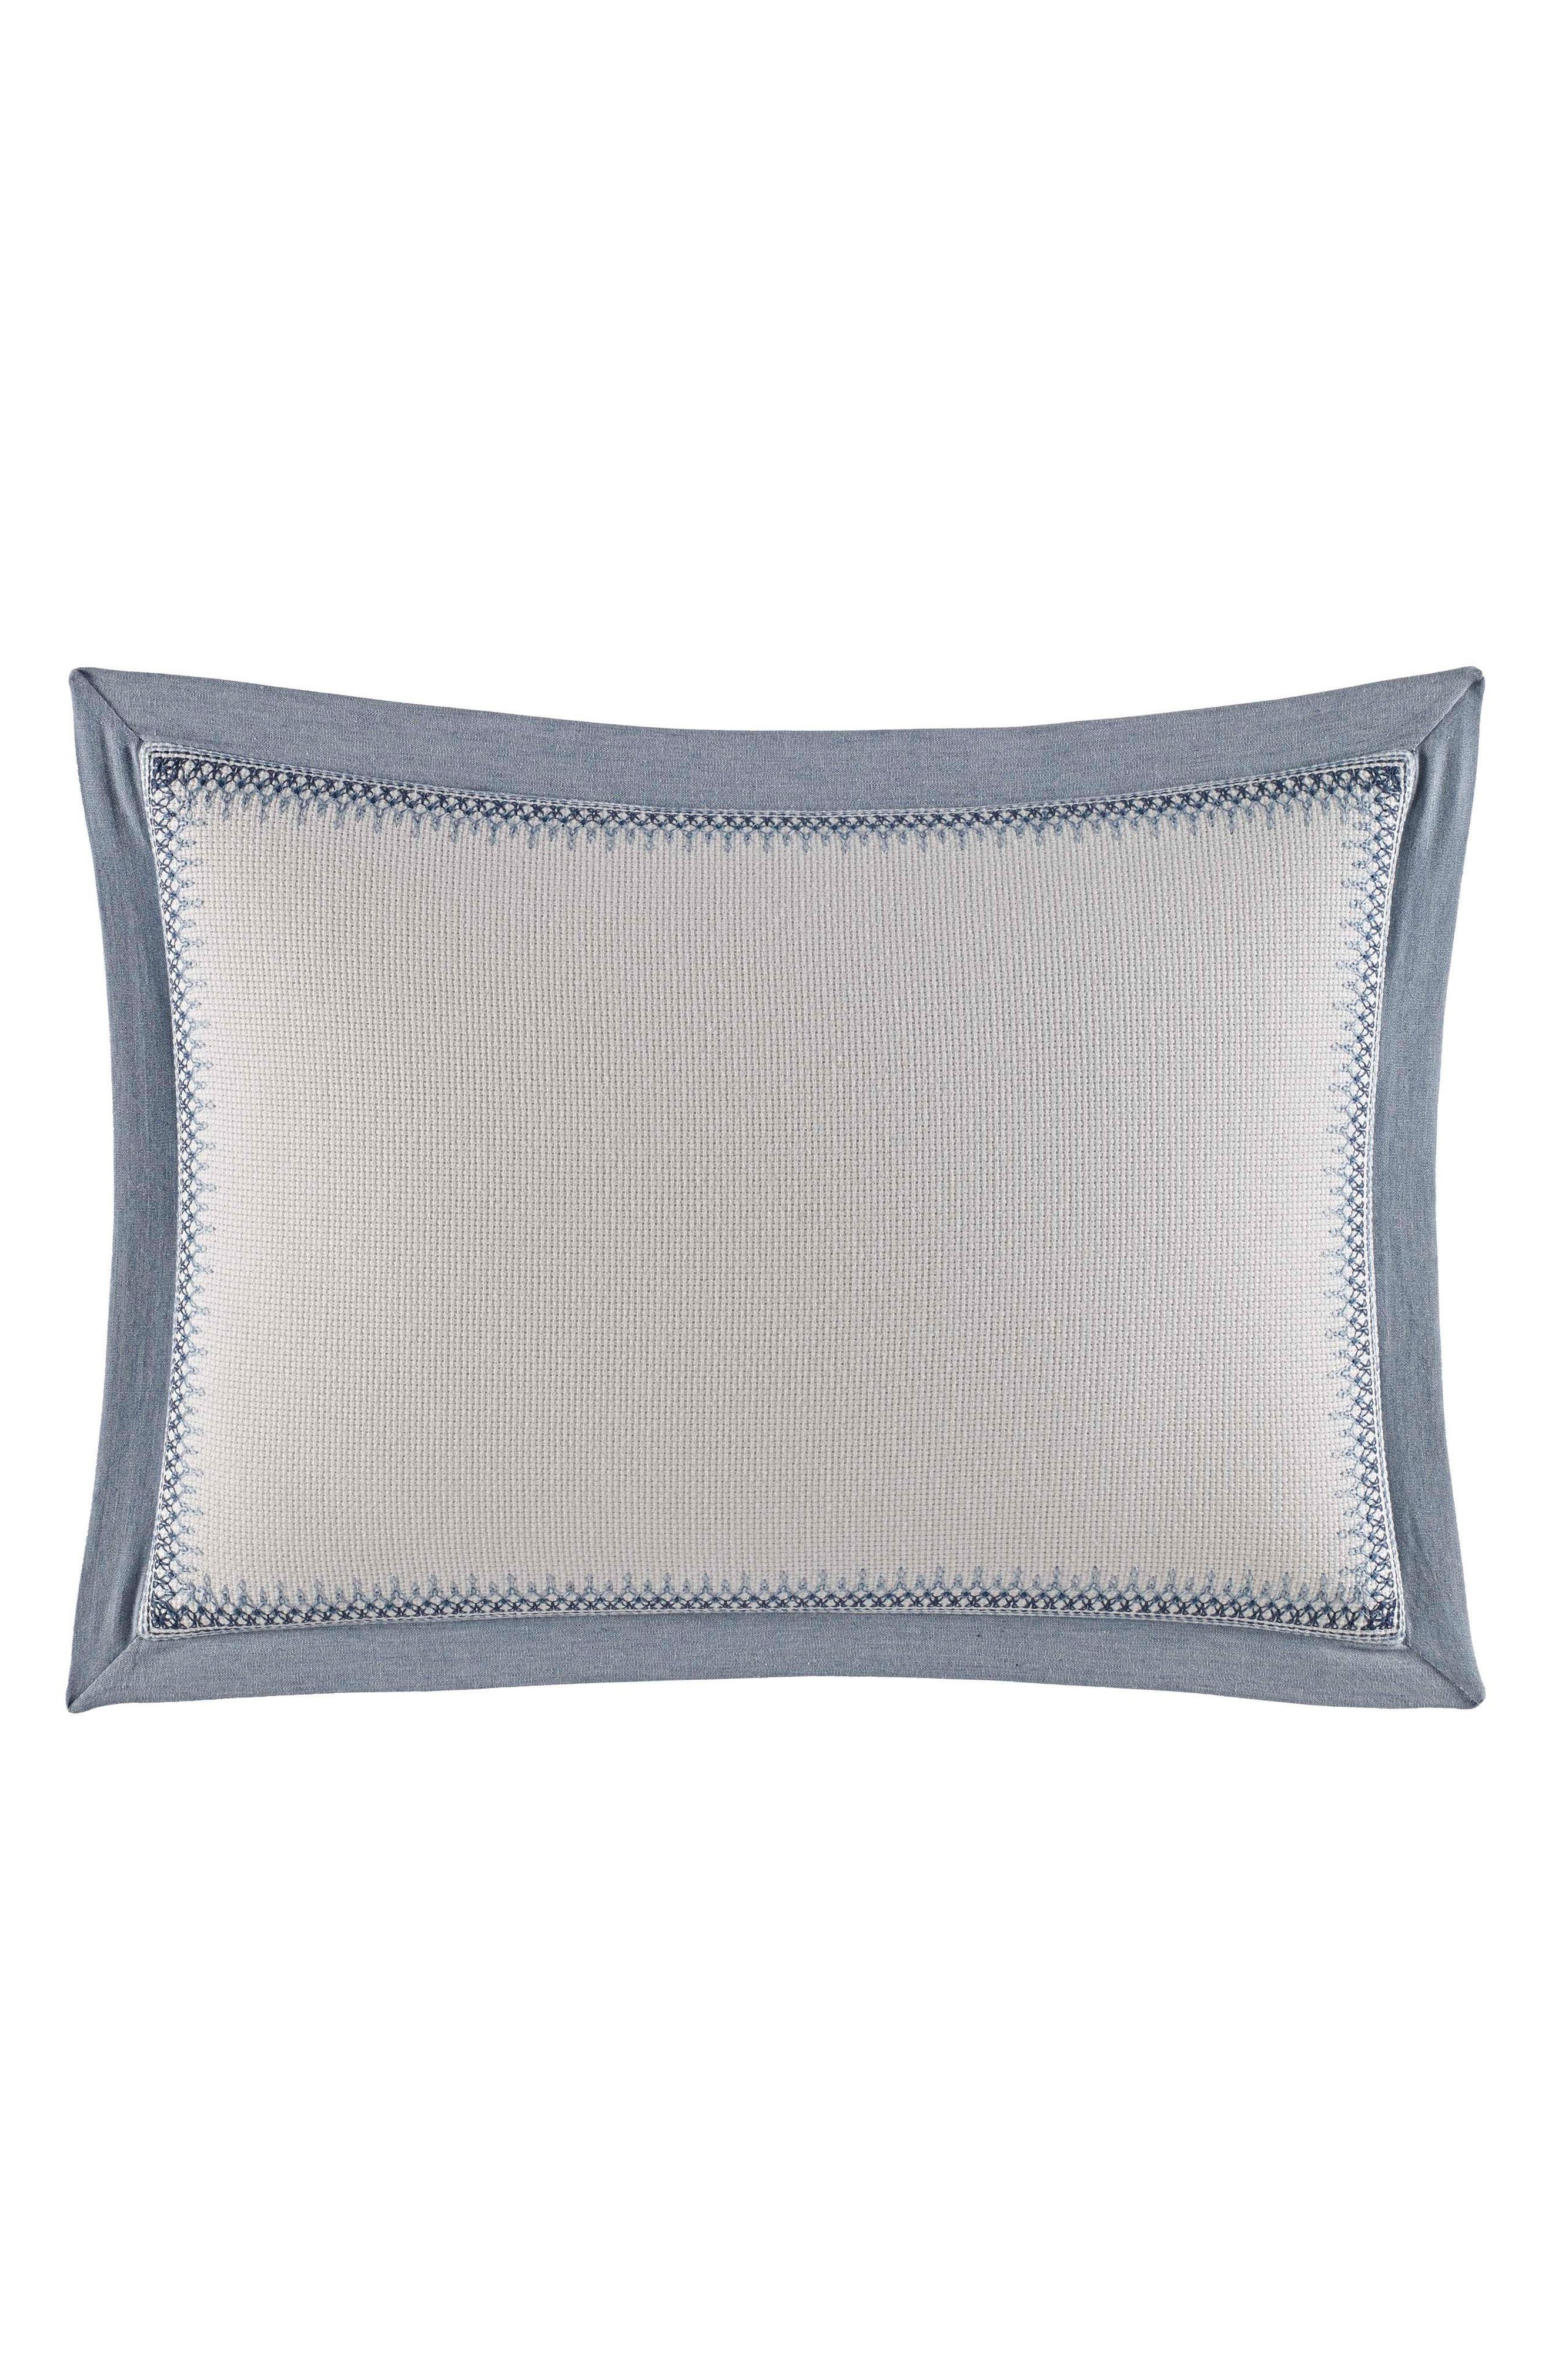 NAUTICA Abbot Embroidered Accent Pillow, Main, color, MEDIUM BLUE